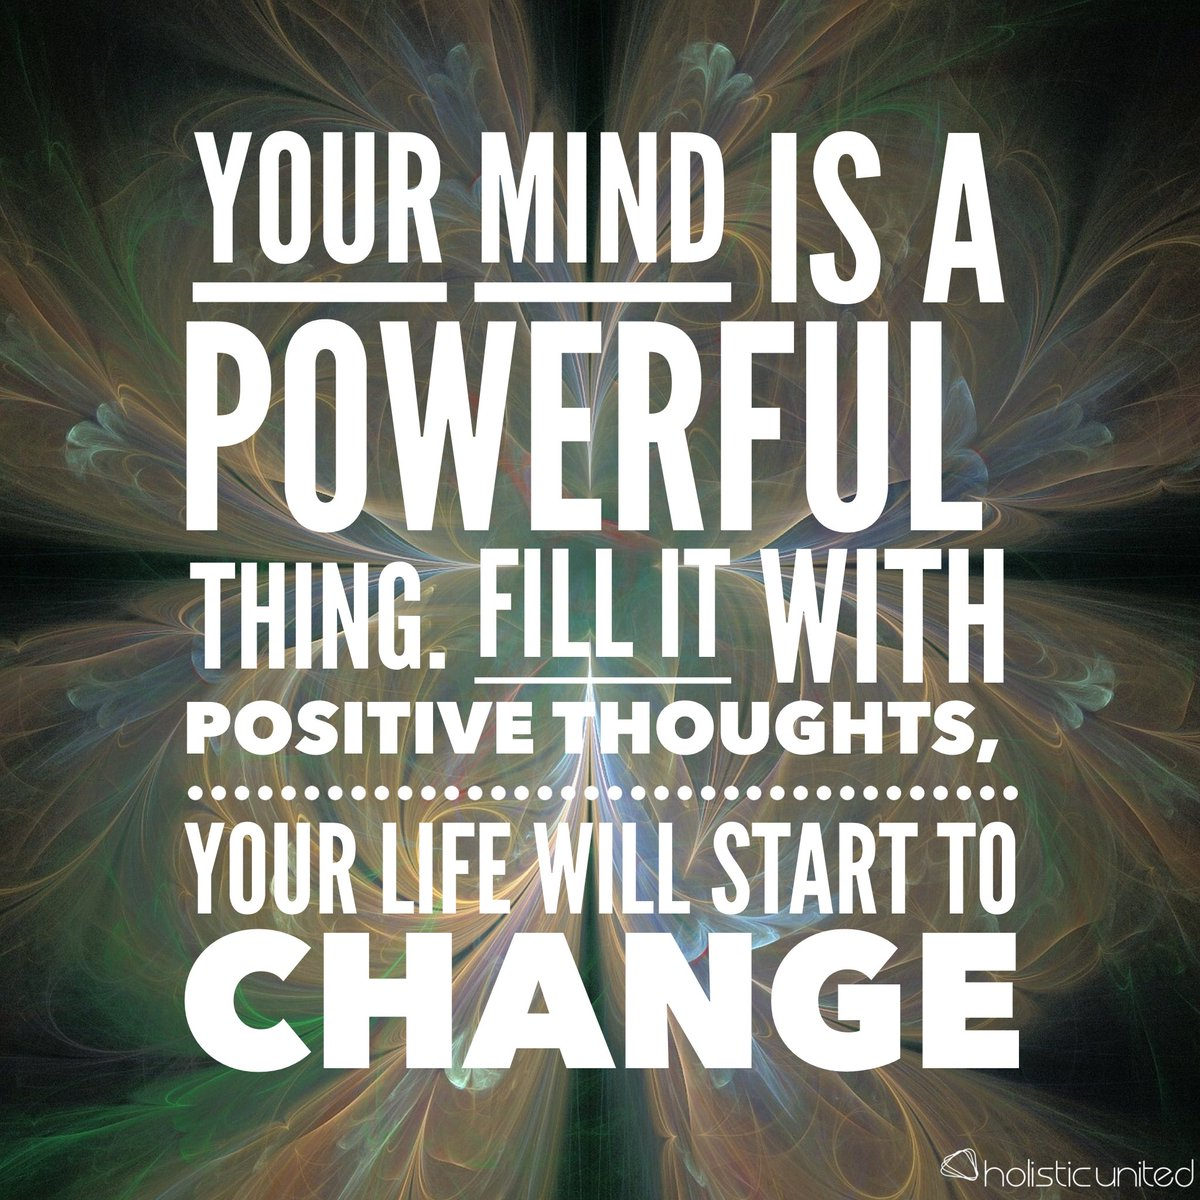 Your #mind is a #powerful thing. Fill it with #positive #thoughts, your #life will start to #change. #holisticunited https://t.co/EVe9fq2bav